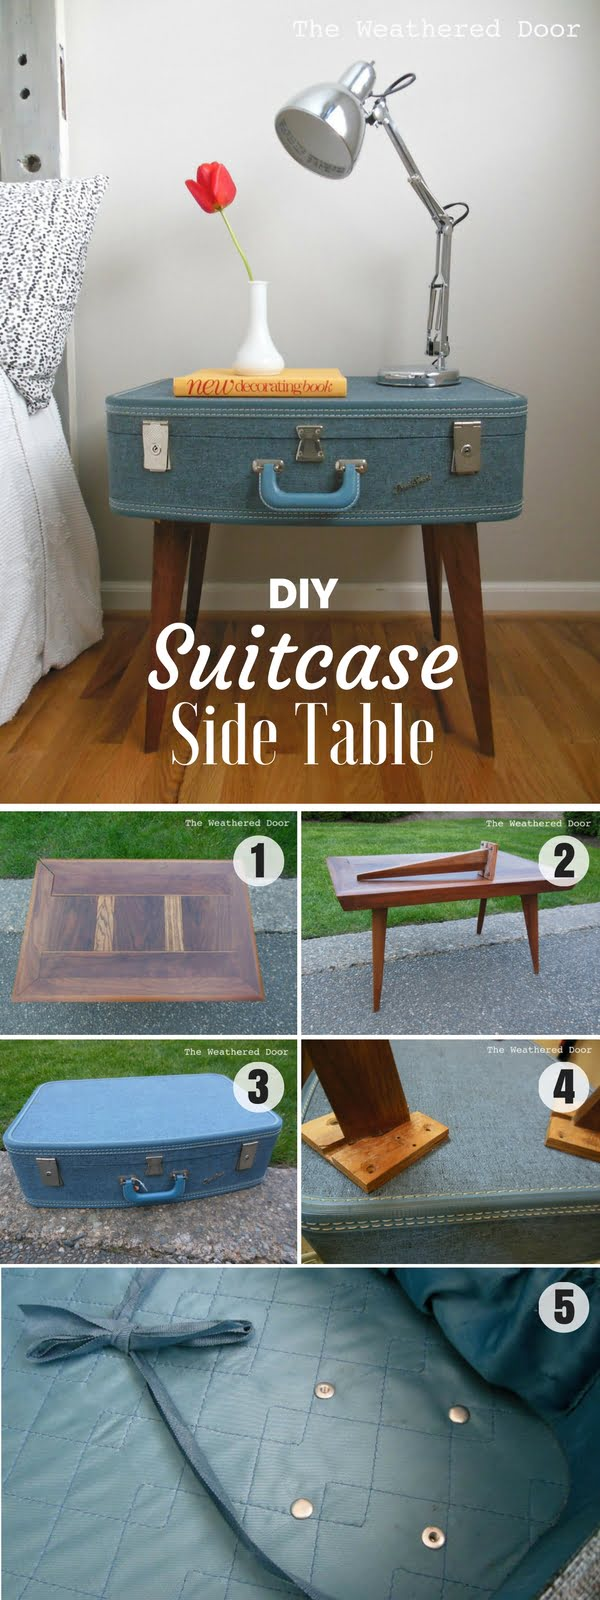 16 Beautiful DIY Bedroom Decor Ideas That Will Inspire You - Check out how to make an easy DIY Suitcase Side Table for bedroom decor